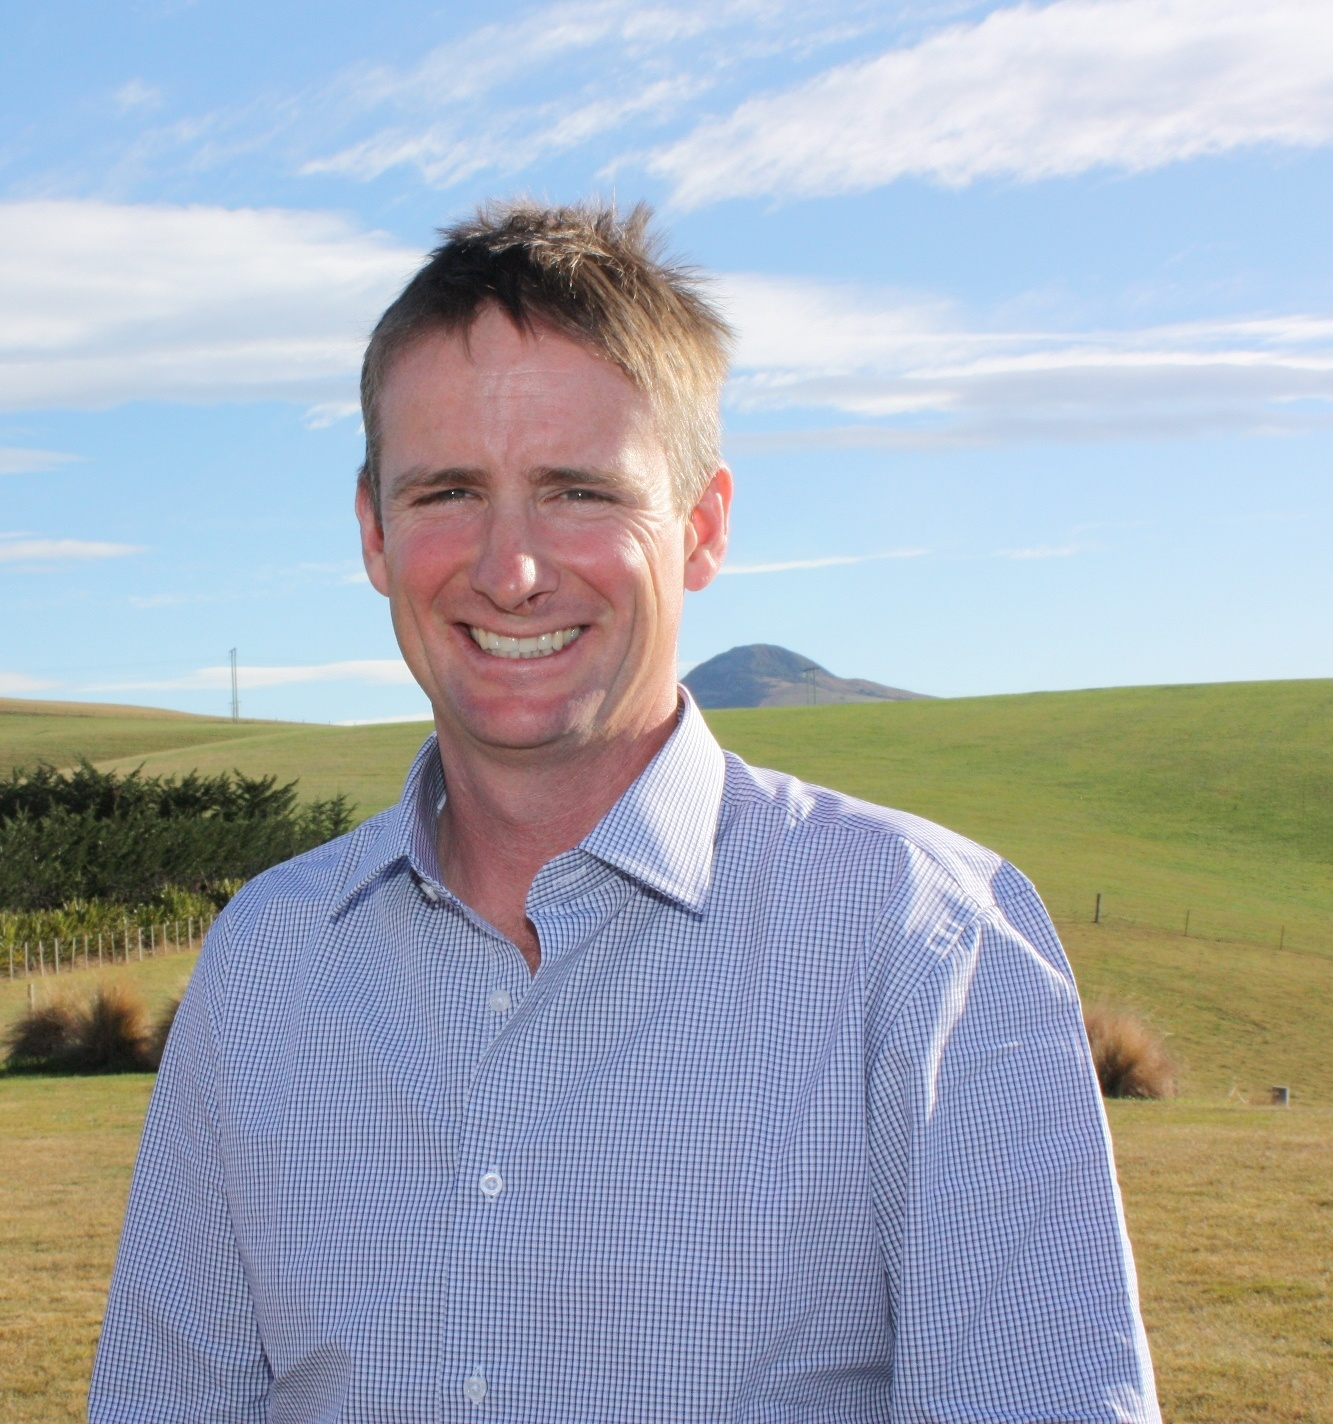 Rob Lawson - using software to manage through 2-year drought